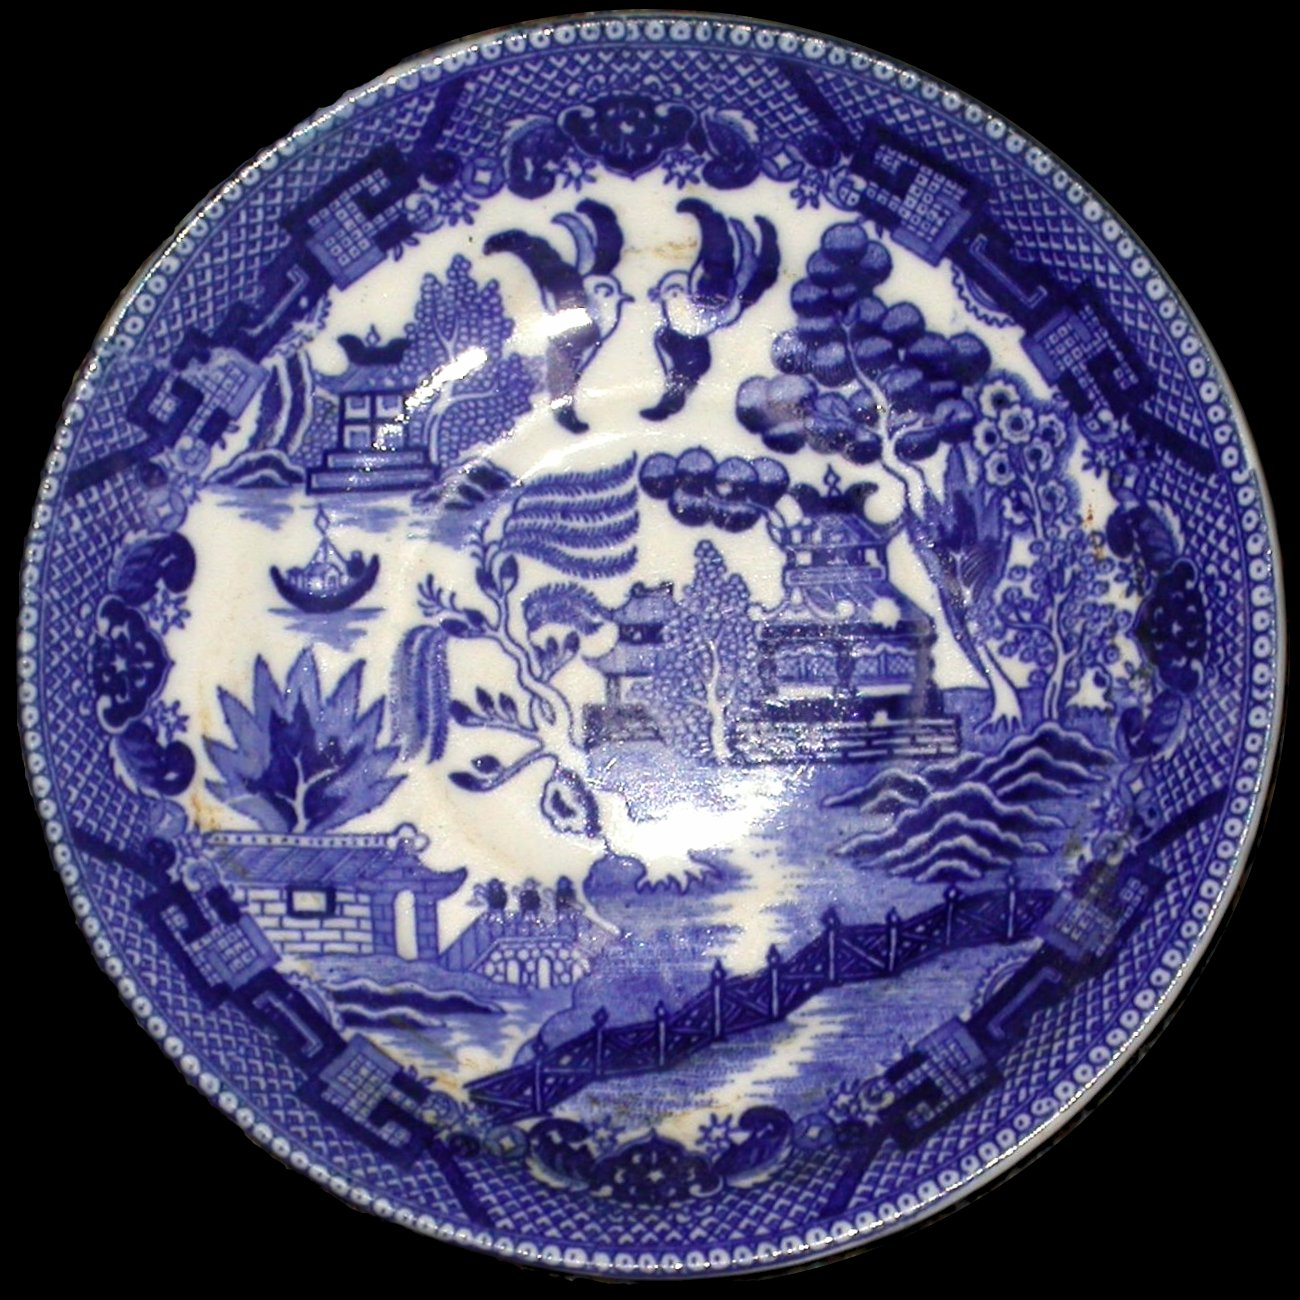 Famous China Patterns blue and white pottery - wikipedia